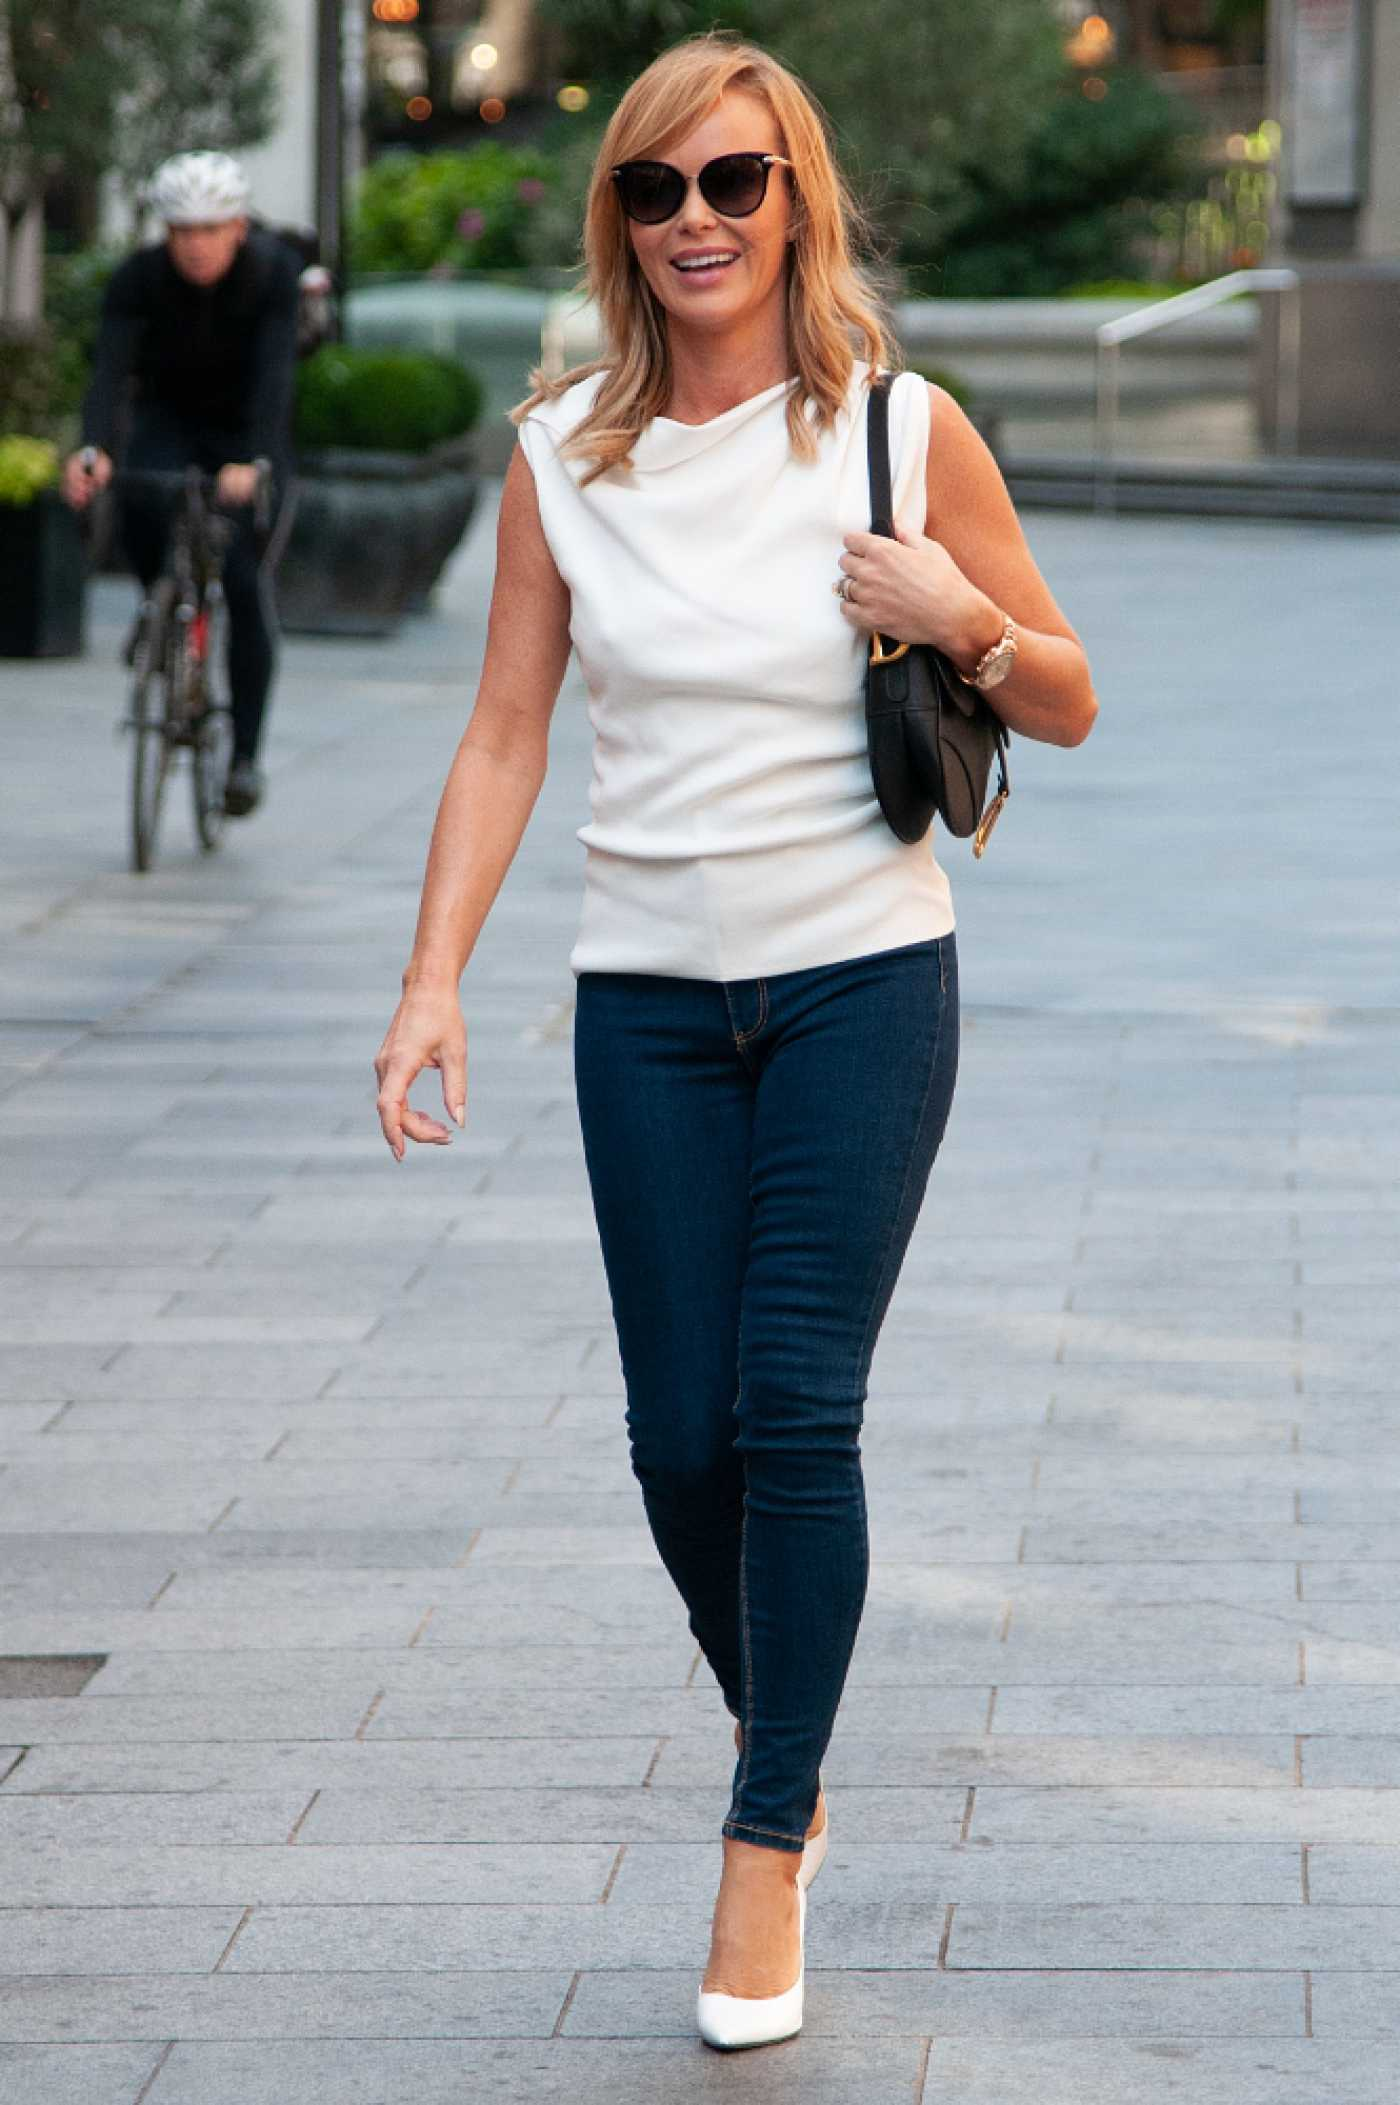 Amanda Holden in a White Blouse Leaves the Heart Radio in London 09/09/2020